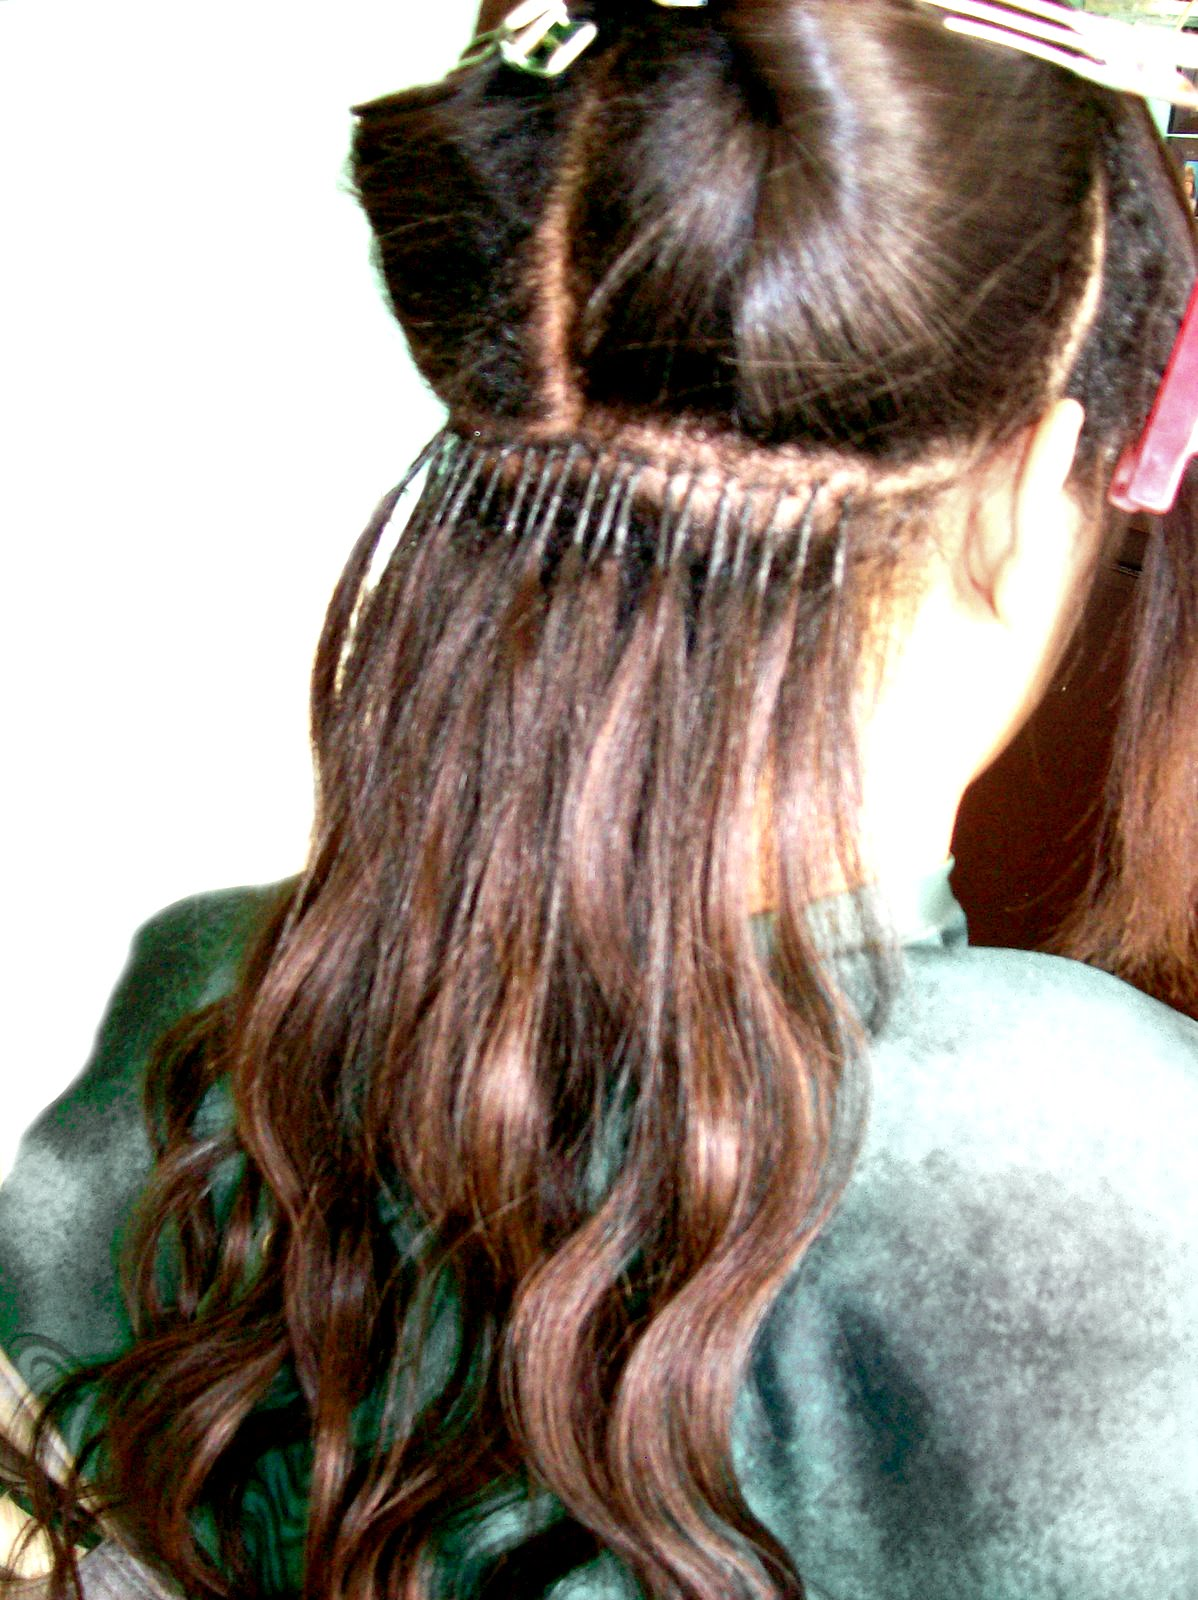 Extensiones de pelo natural extensiones y cortinas en tattoo design bild - Extensiones de pelo natural cortinas ...